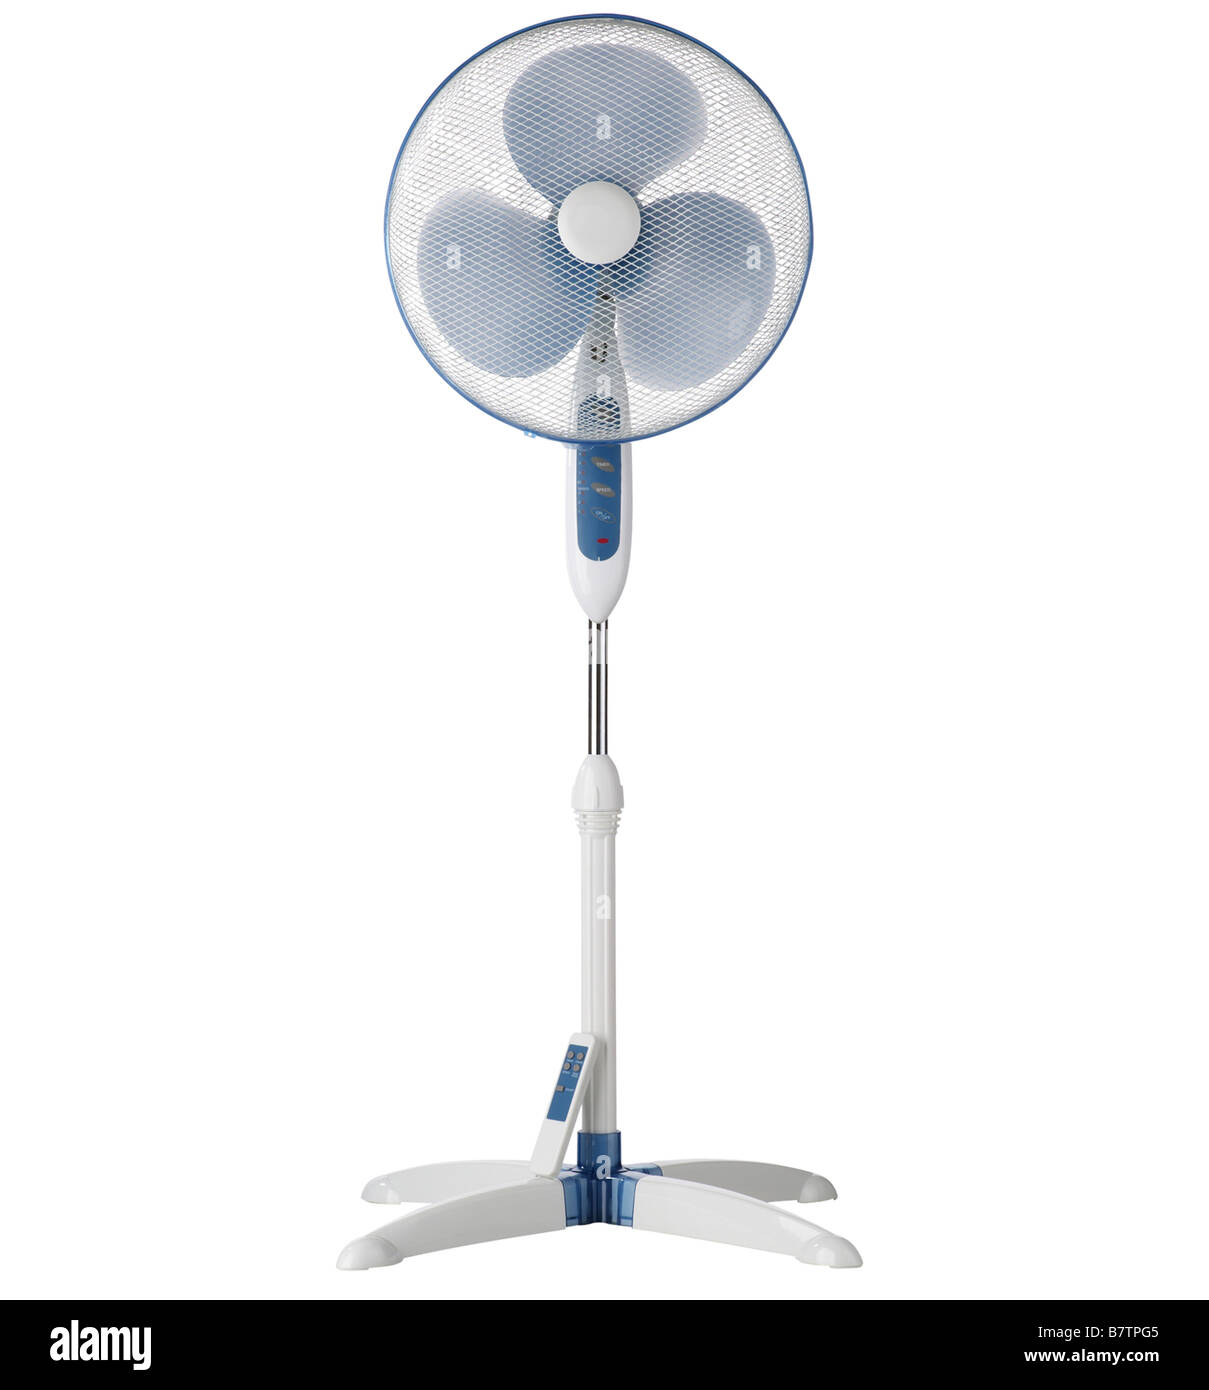 Floor standing fan - Stock Image